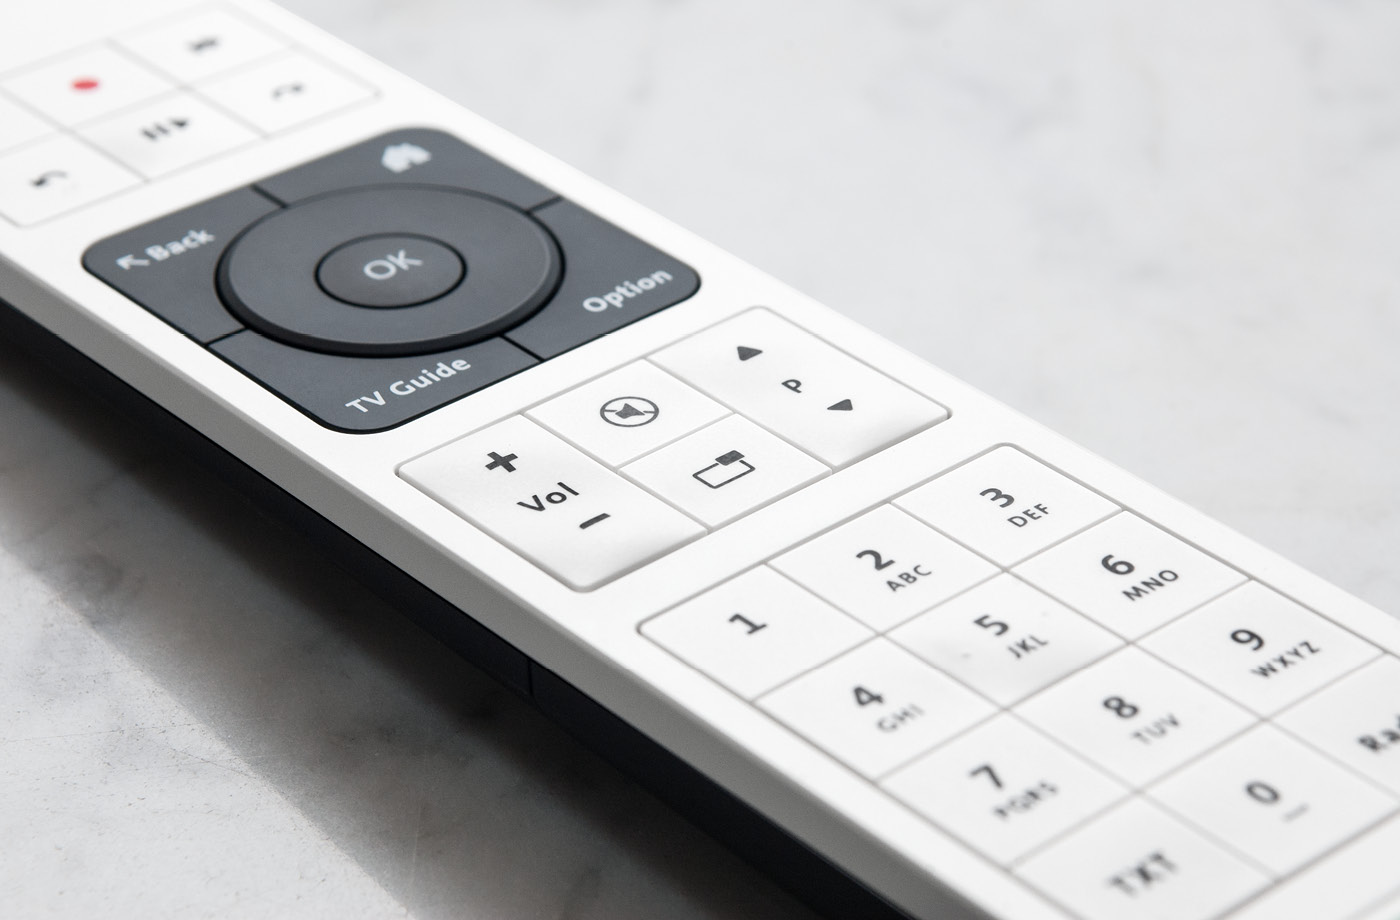 product design of an tv remote